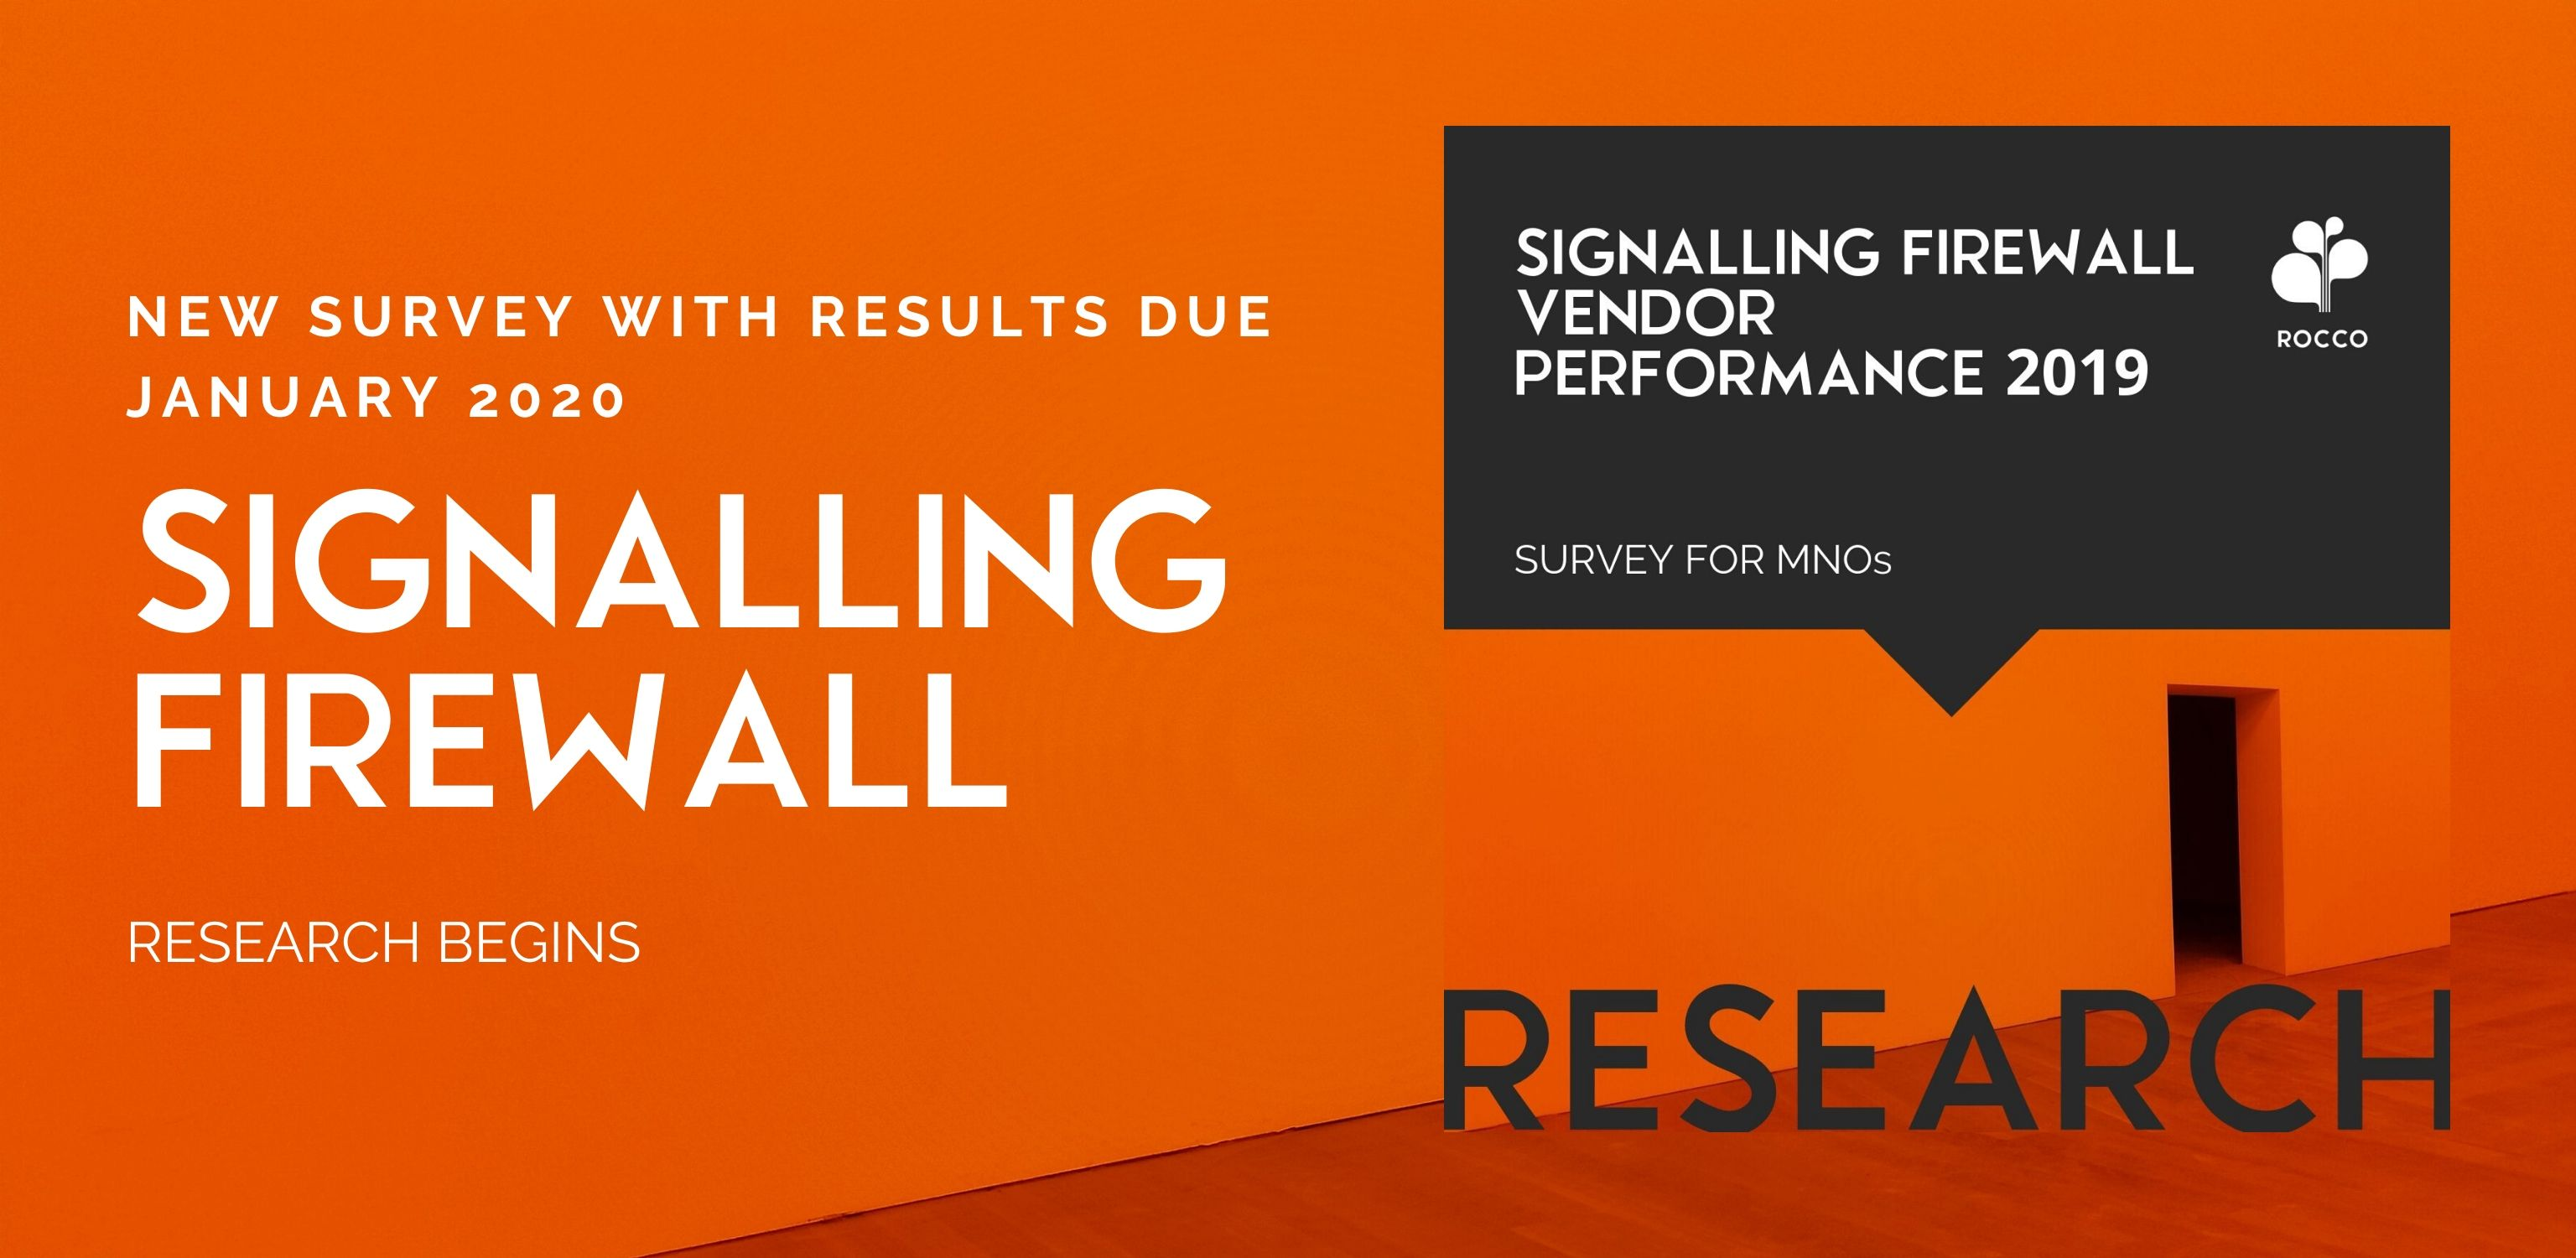 LAUNCH: SIGNALLING FIREWALL VENDOR PERFORMANCE 2020